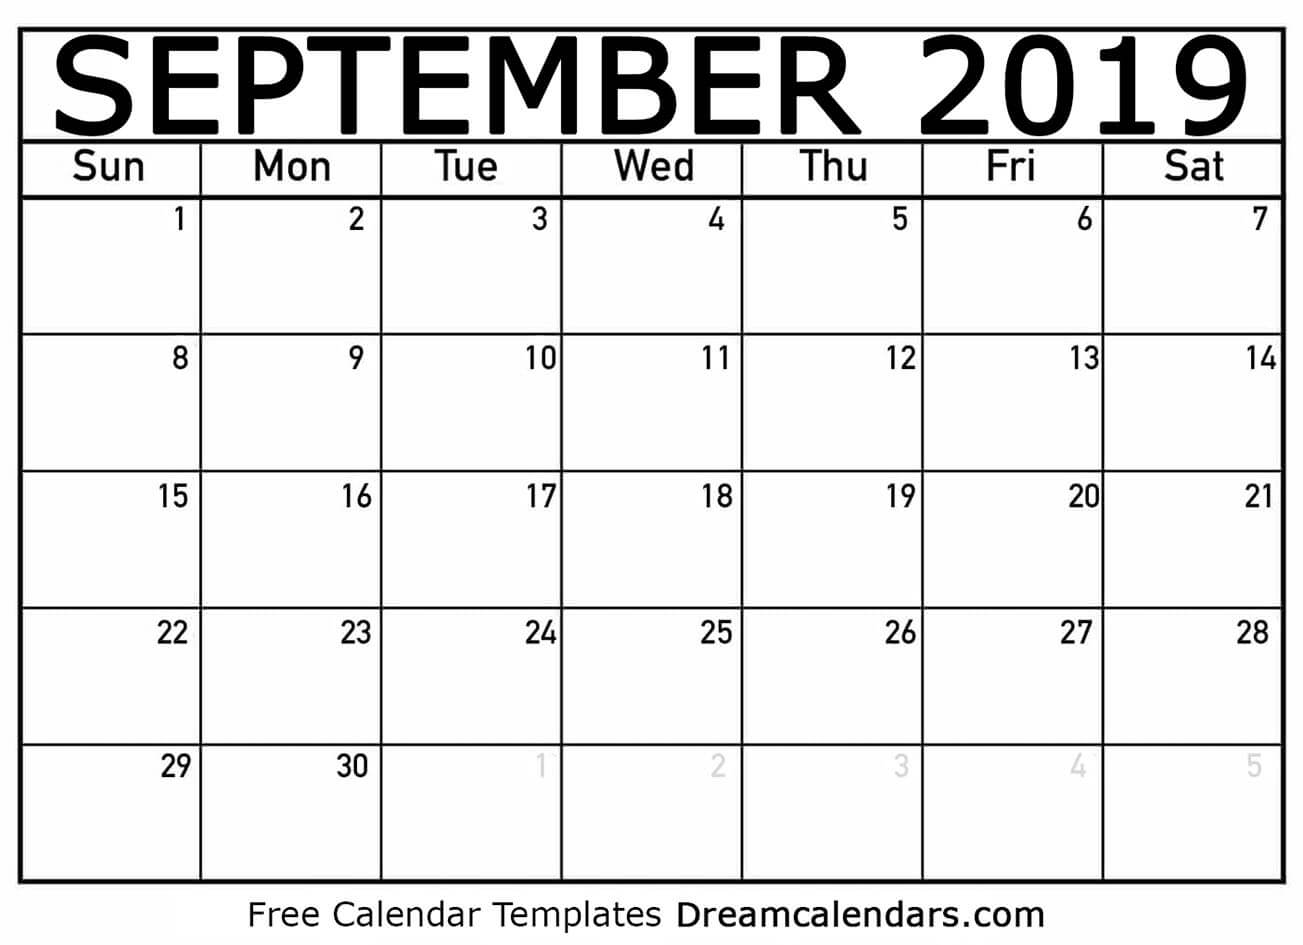 photo about September Printable Calendar called September 2019 Calendar